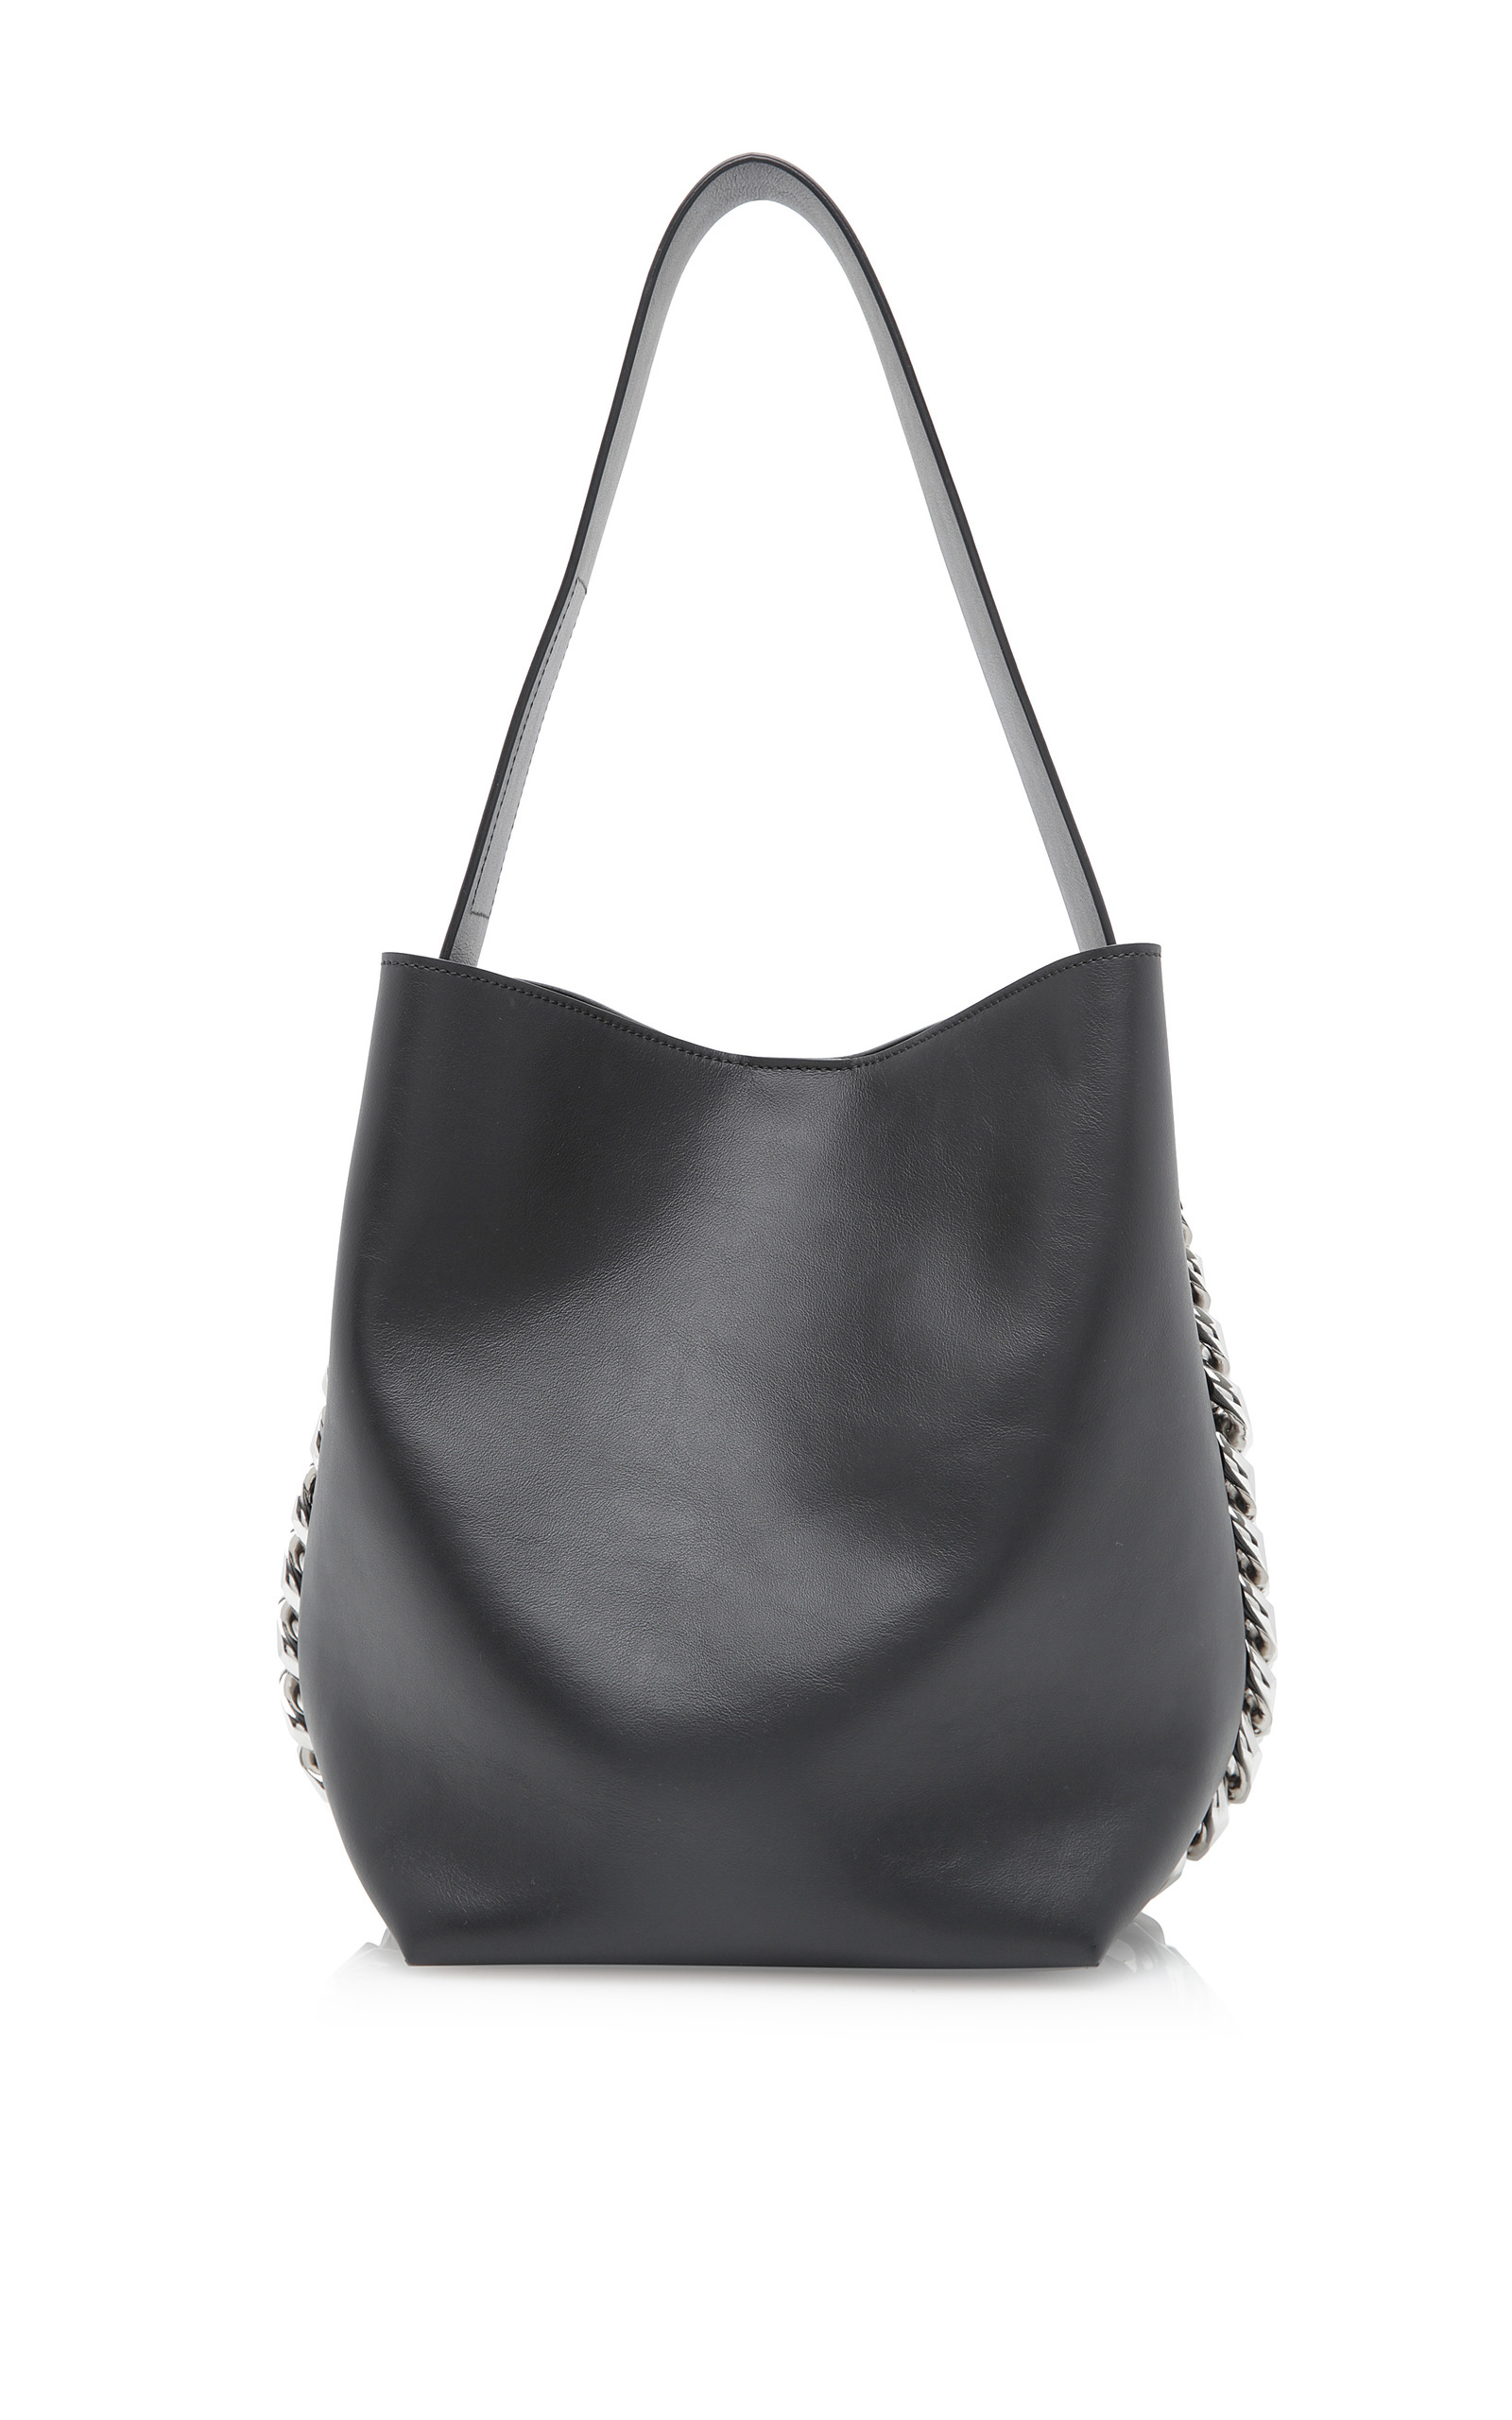 Givenchy Infinity Hobo Tote In 001